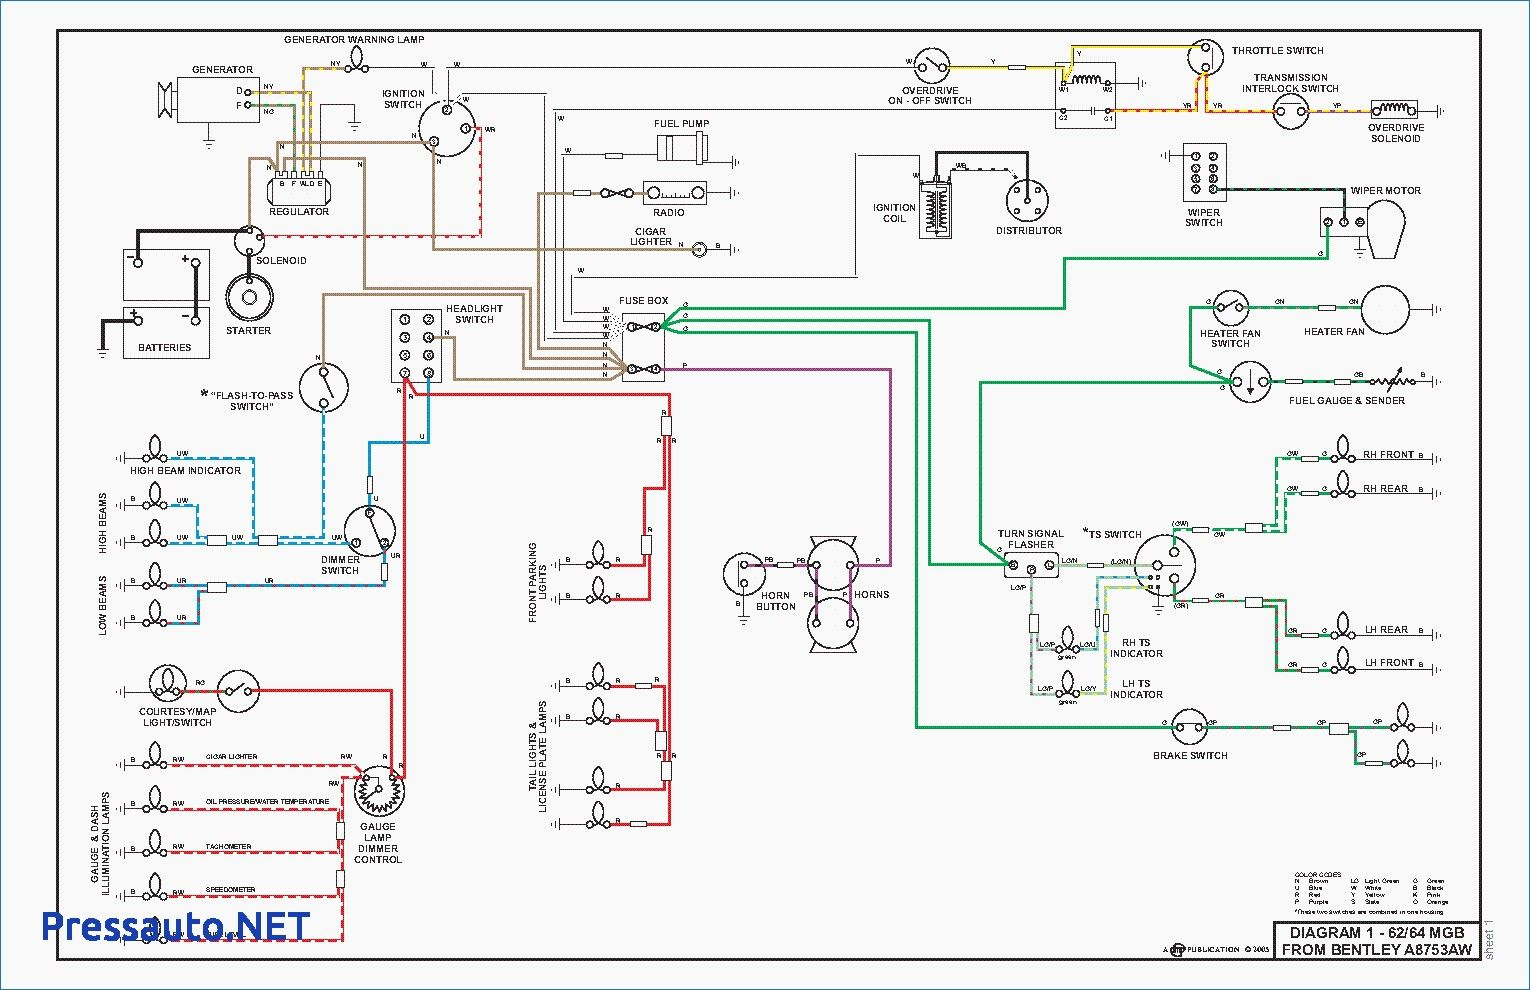 11 Complex Electrical Wiring Diagram Pdf Technique Bacamajalah Electrical Wiring Diagram Automotive Electrical Diagram